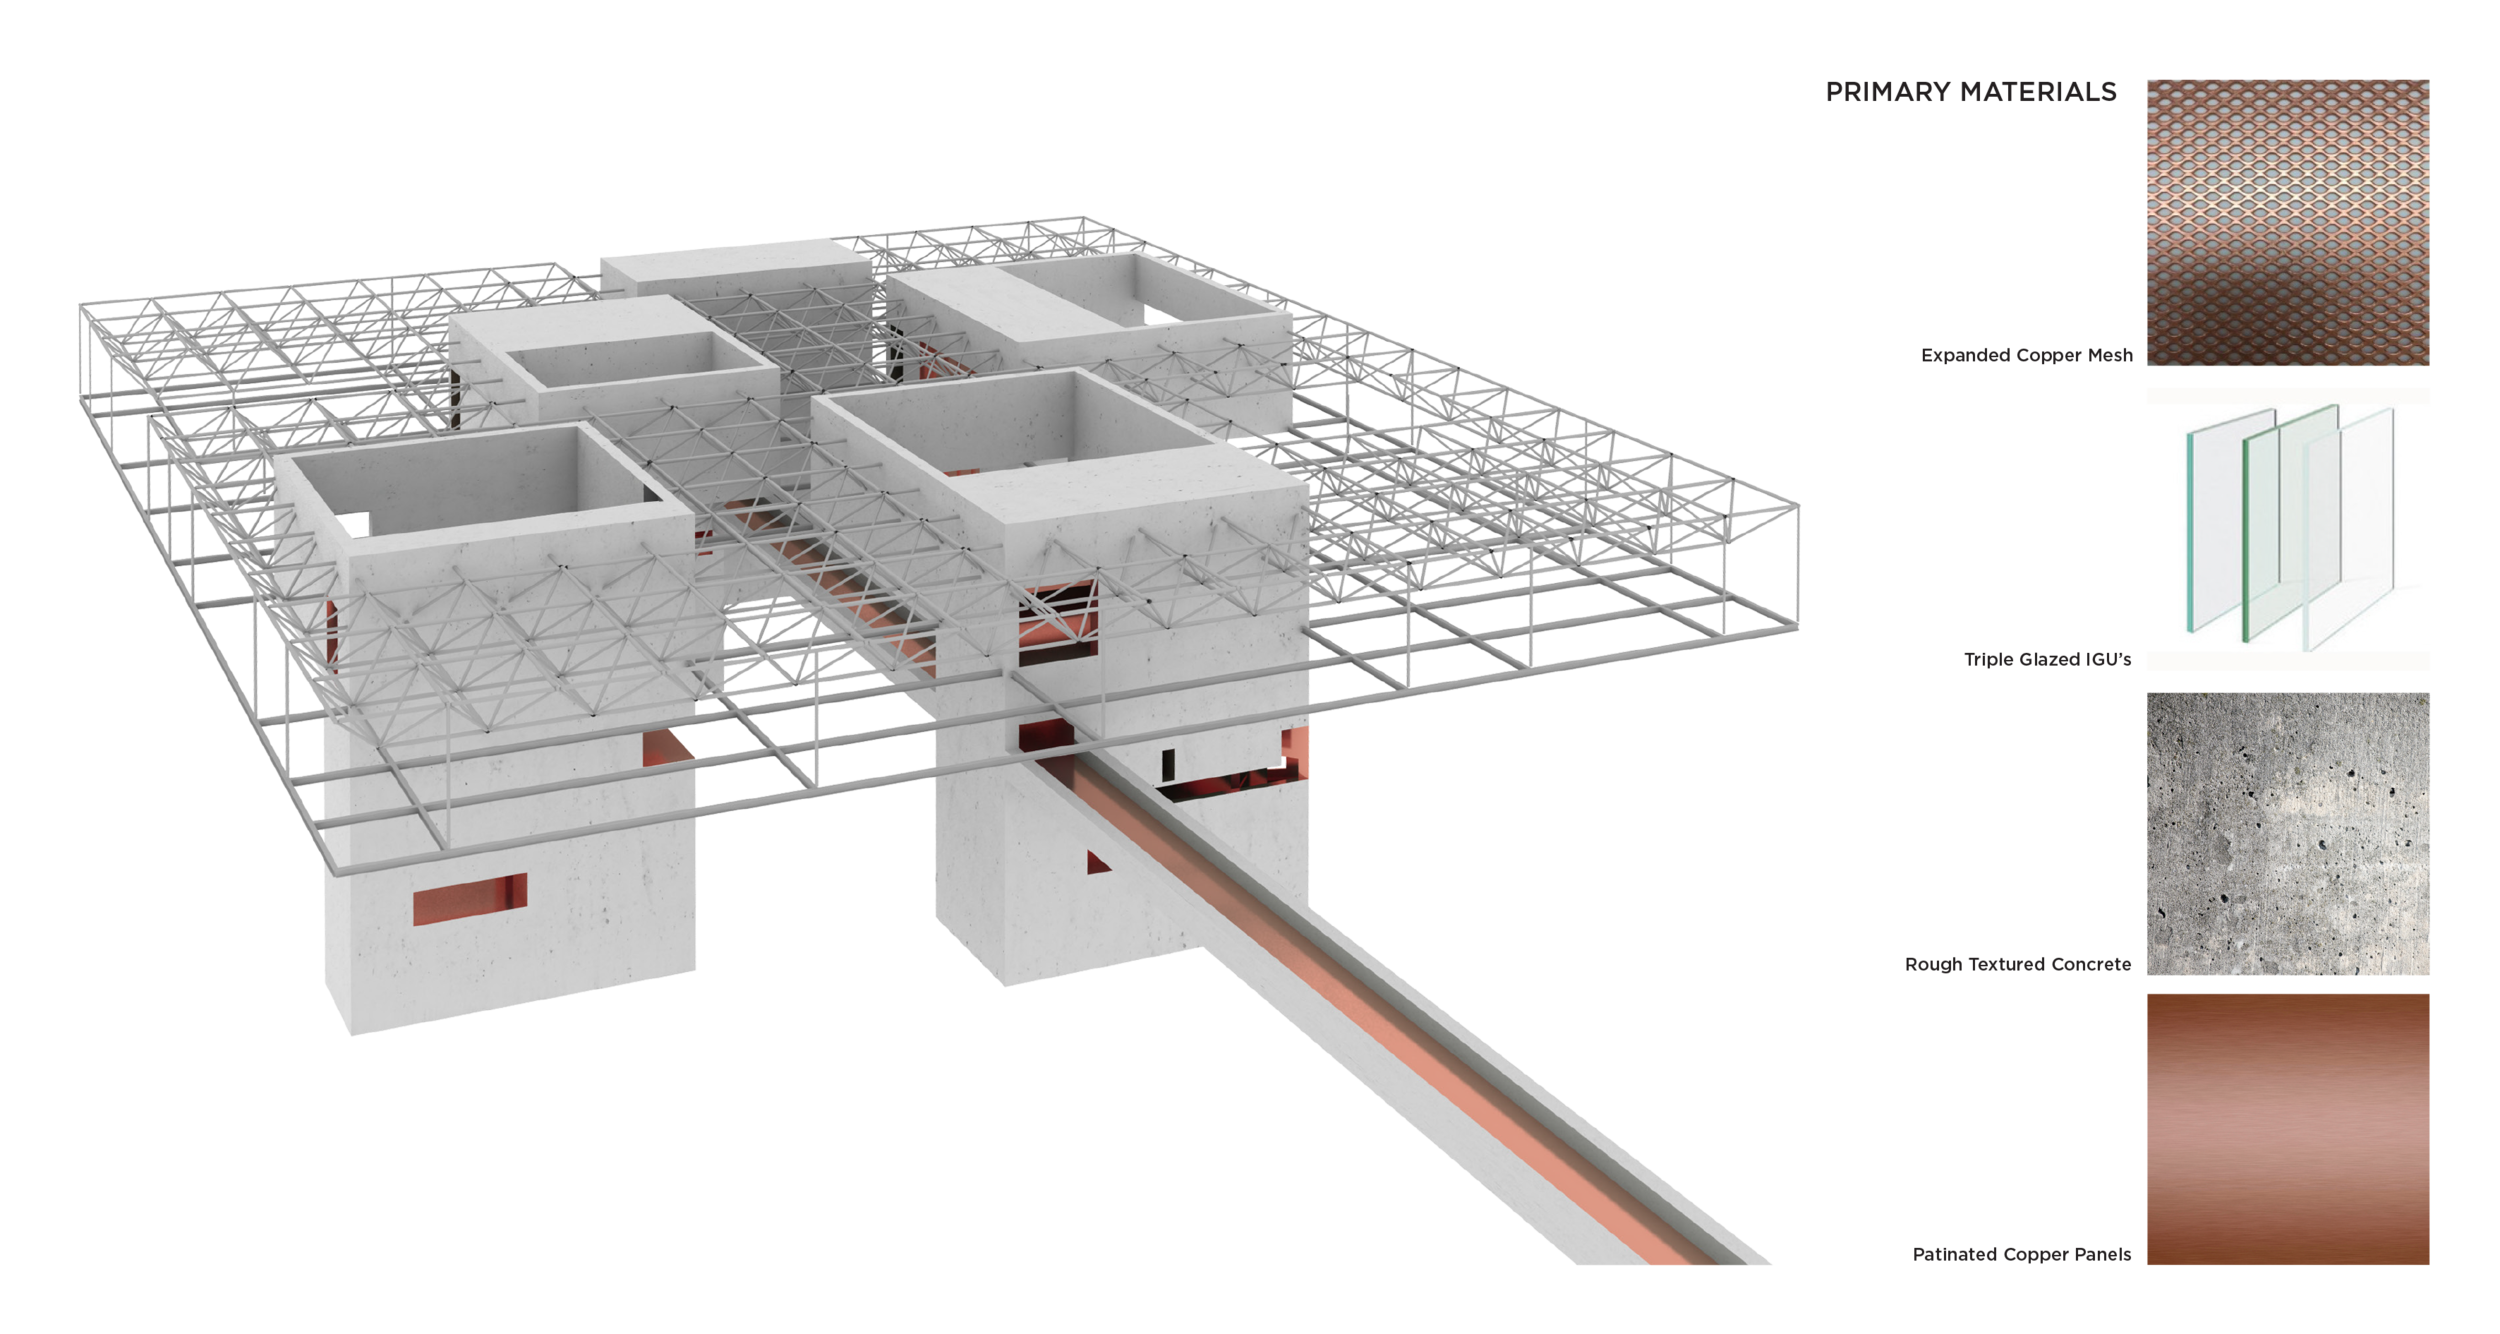 """MATERIALS AND STRUCTURE   The horizontal volume rests on several cast-in-place concrete cores. Due to the proximity to the river and the consolidated load paths, deep foundations in the form of driven piles are envisioned subject to geotechnical investigations. A steel space frame at the roof level provides a light weight superstructure solution accommodating long spans of the horizontal form while providing ample mechanical space. Floor beams and deck are suspended from the space frame with tubular steel hangers. The space frame will expedite erection and provide a cost-effective solution, reducing the weight of the building cantilevers.The project is comprised of four primary materials. A copper metal mesh that gives the building an ethereal effect, triple glazing, concrete, and copper sheets in the """"corespace"""" areas"""